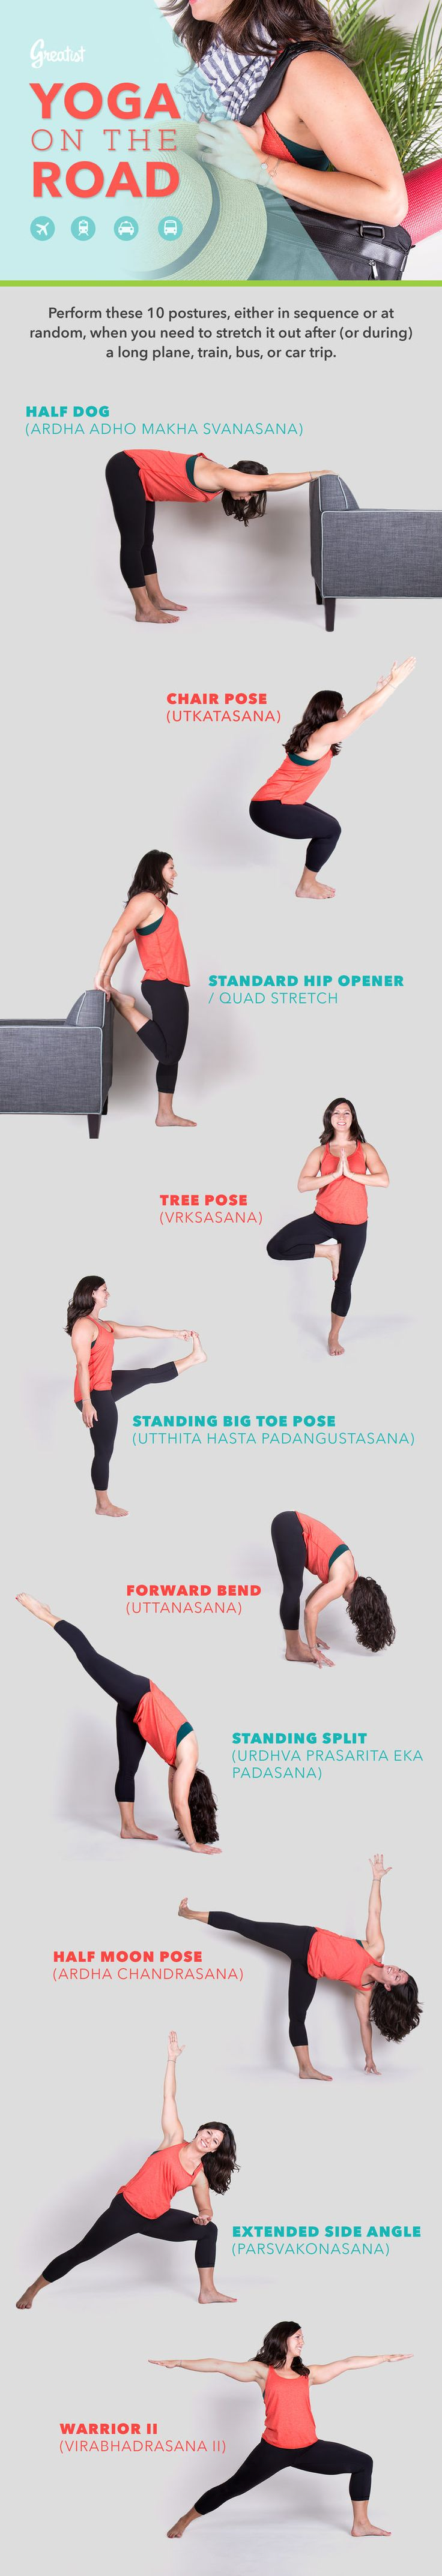 Get the blood flowing with these moves you can do anywhere your travels take you...